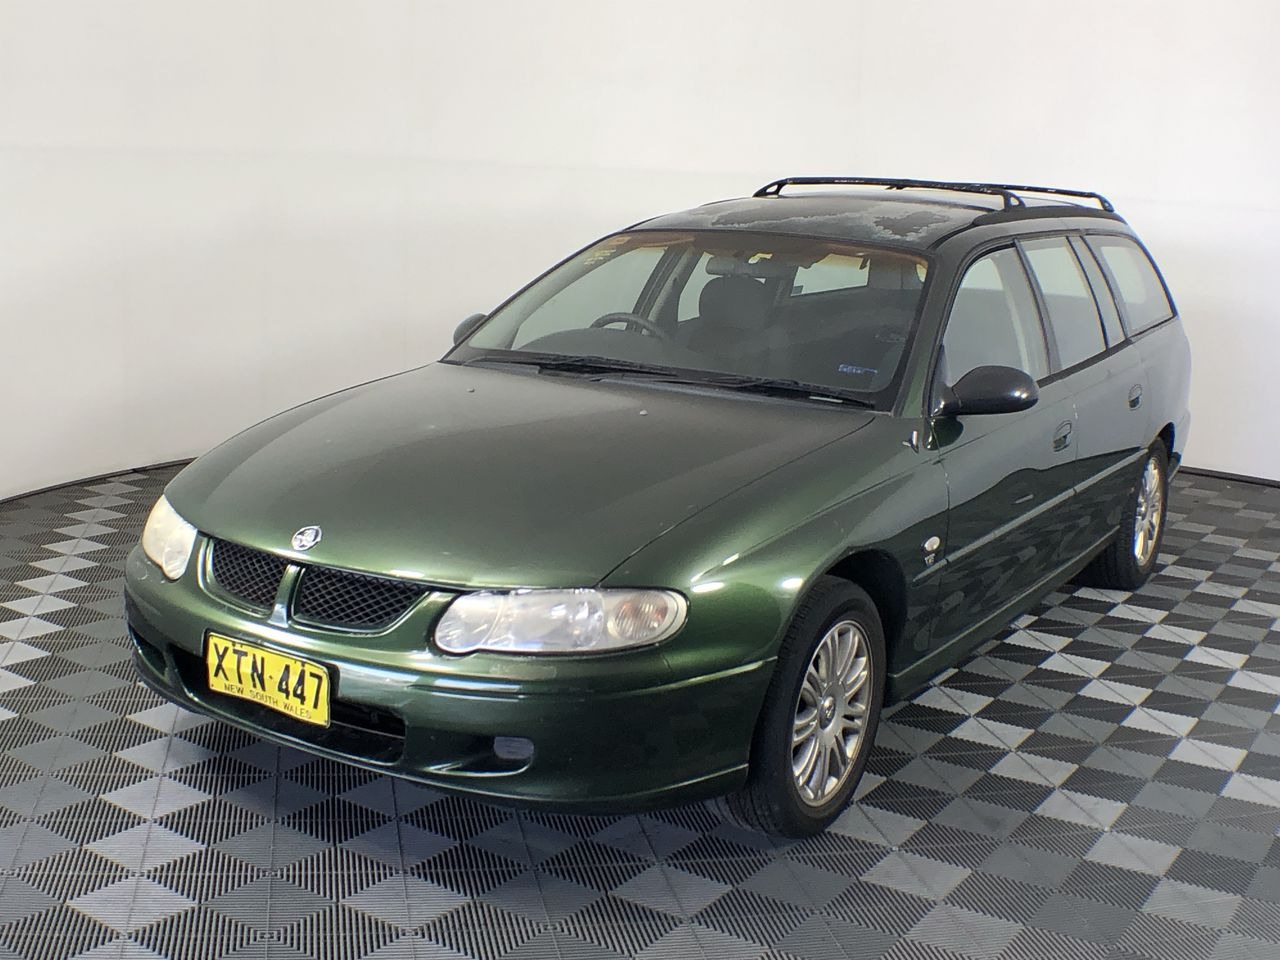 2001 Holden Commodore Executive VX Automatic Wagon